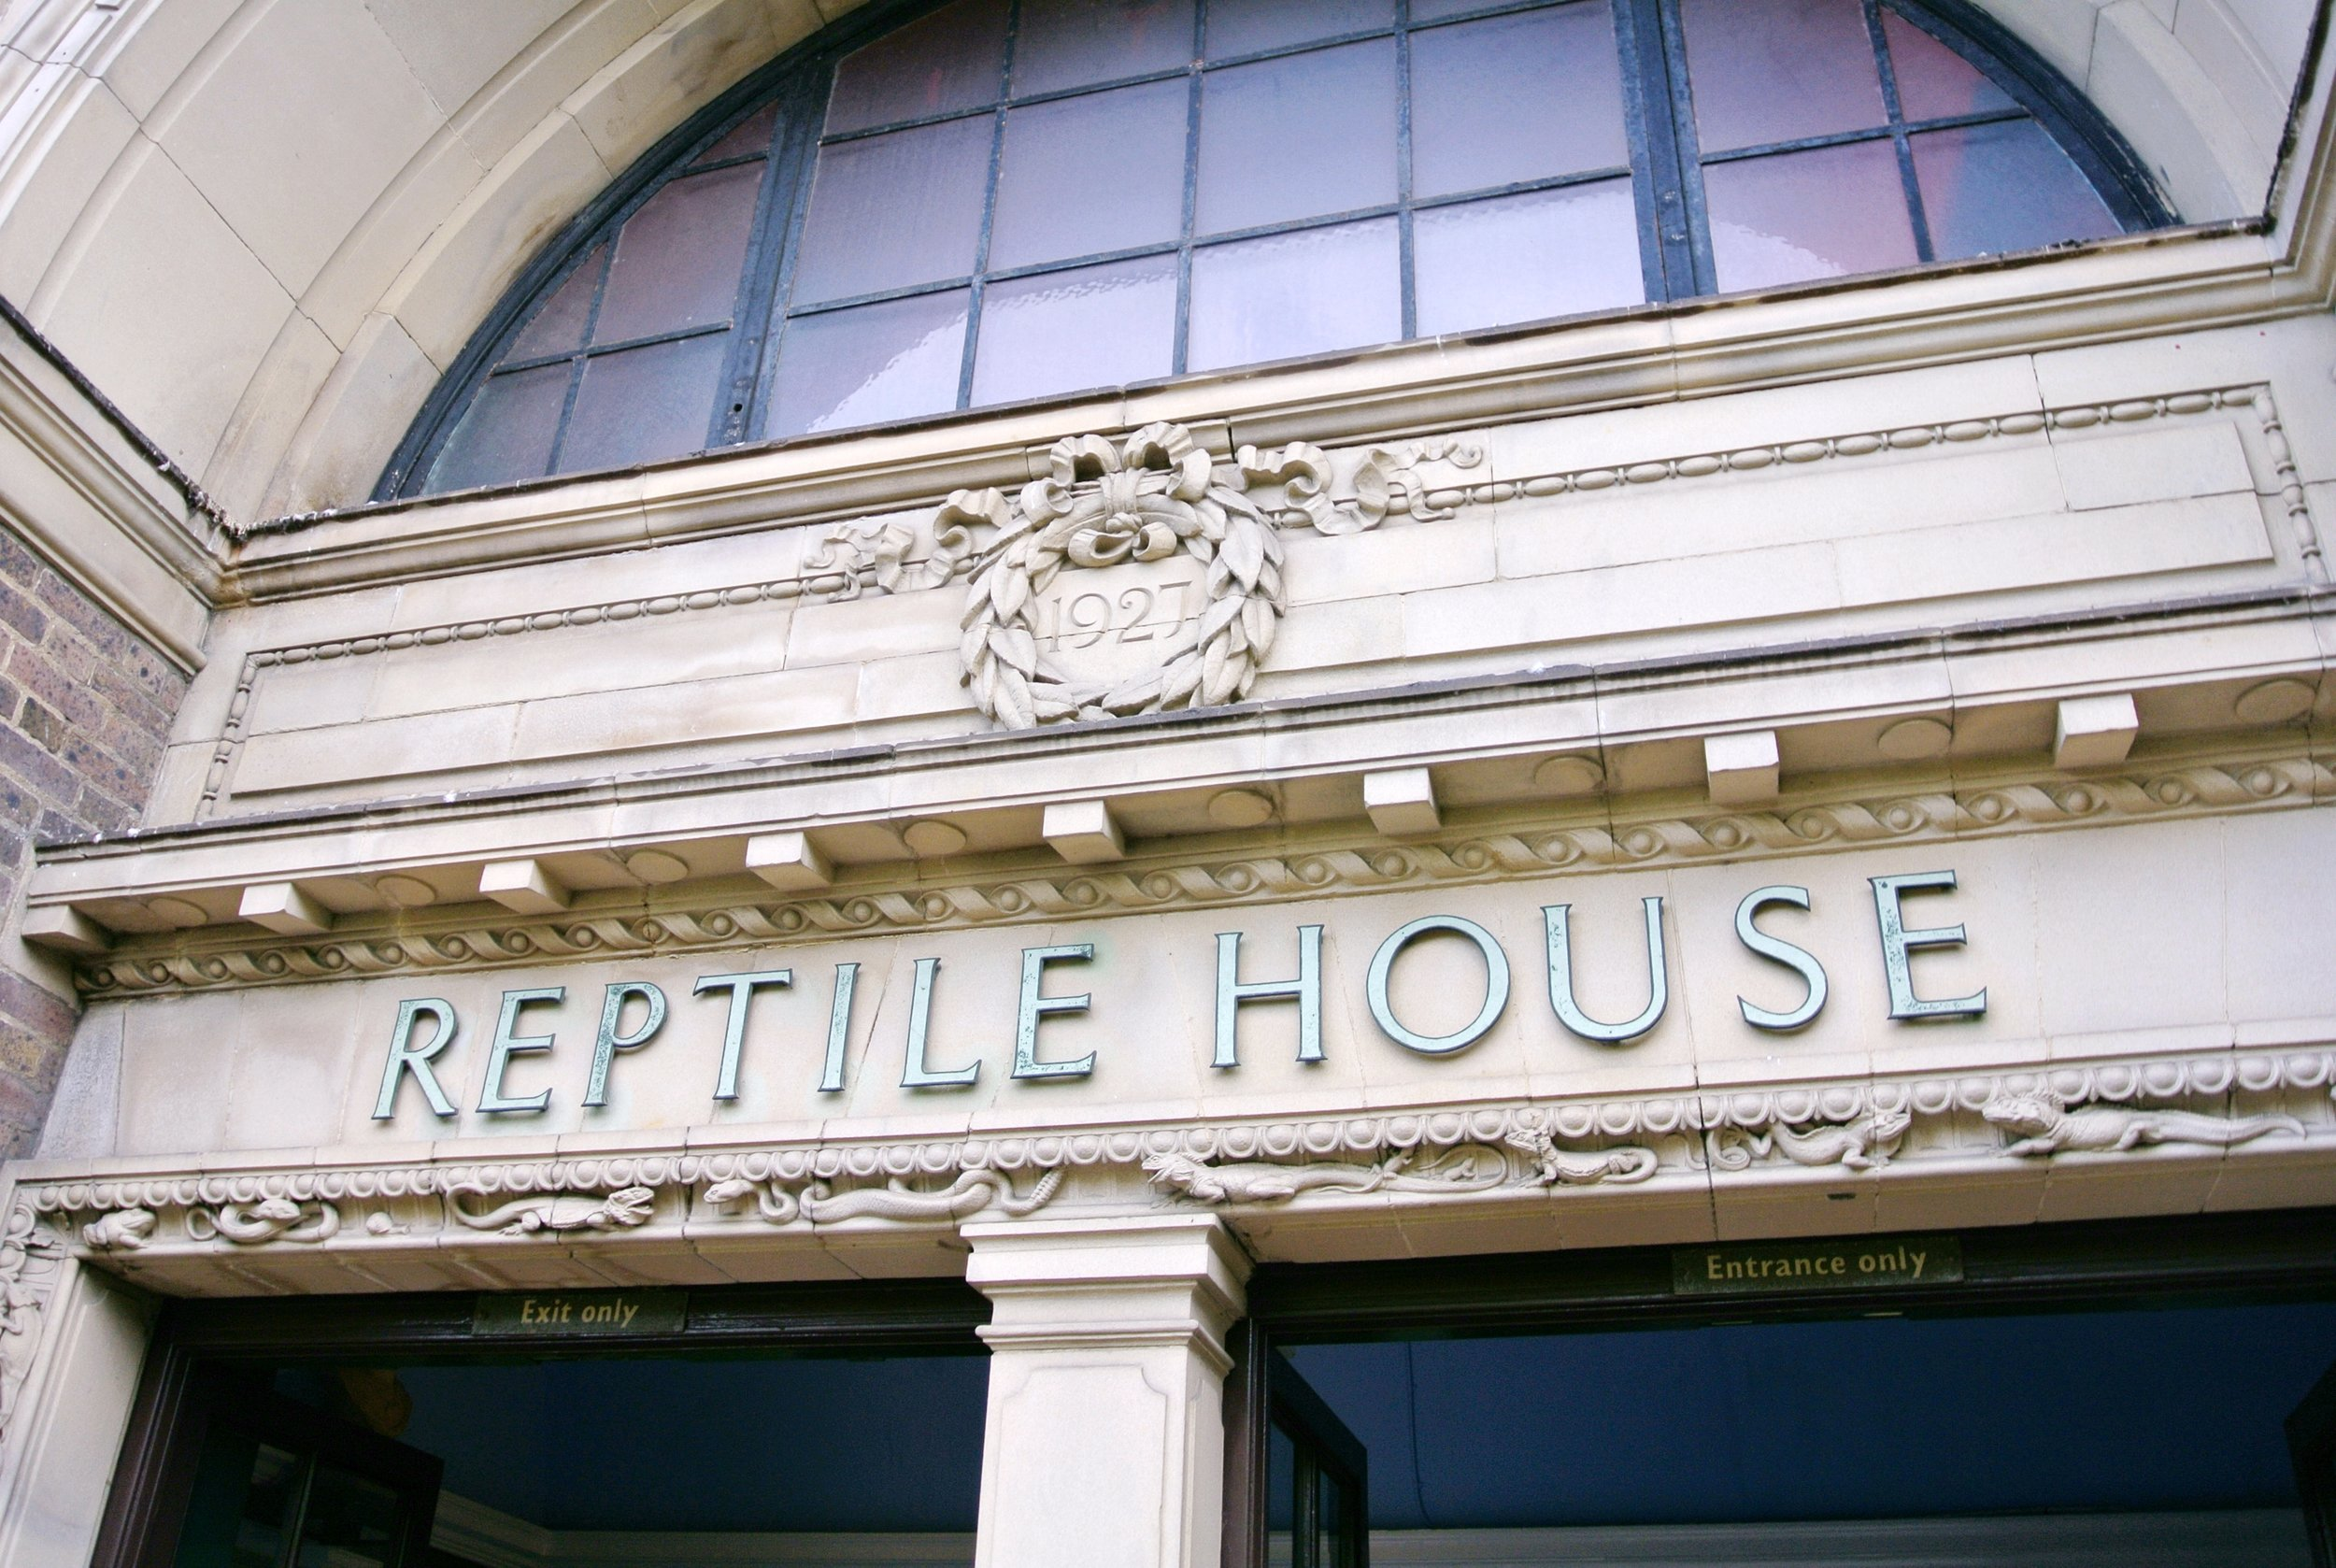 Reptile House, London Zoo | ebbony&lune